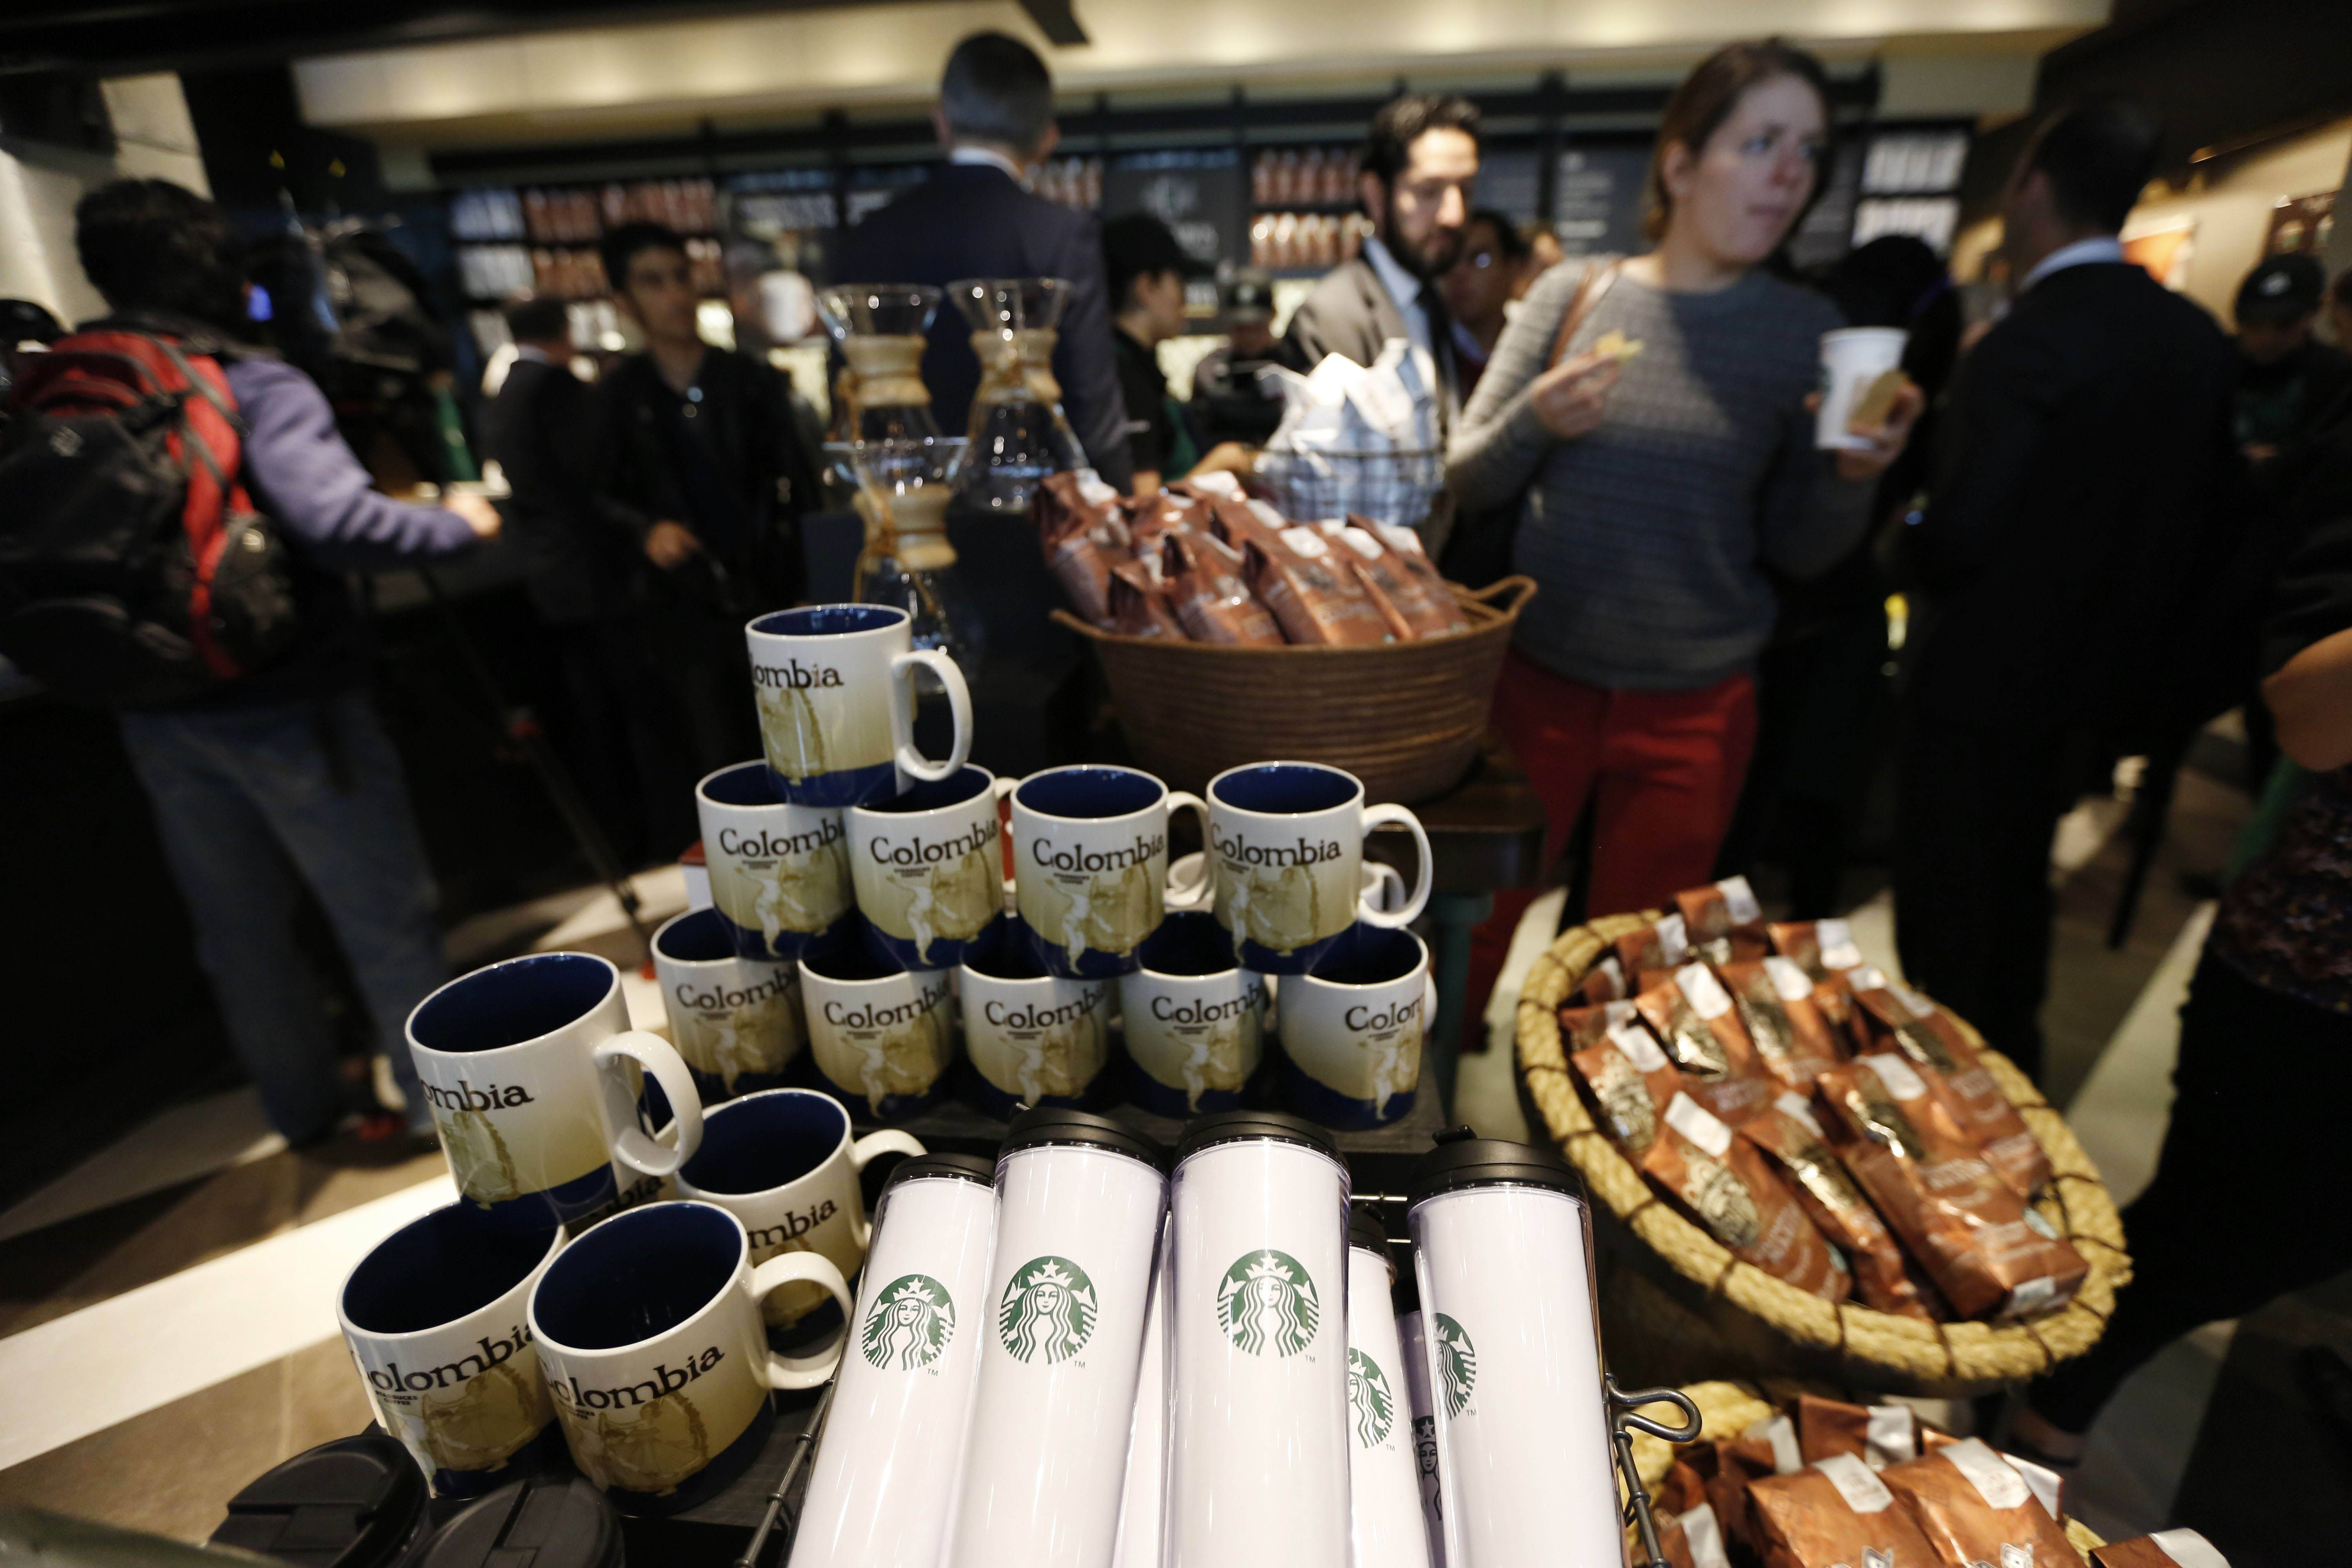 Journalists tour the first Starbucks the day before its public opening in Bogota, Colombia, Wednesday, July 16, 2014. The three-floor coffee house in Bogota is the first of 50 that the Seattle-based company plans to open here in the next five years.